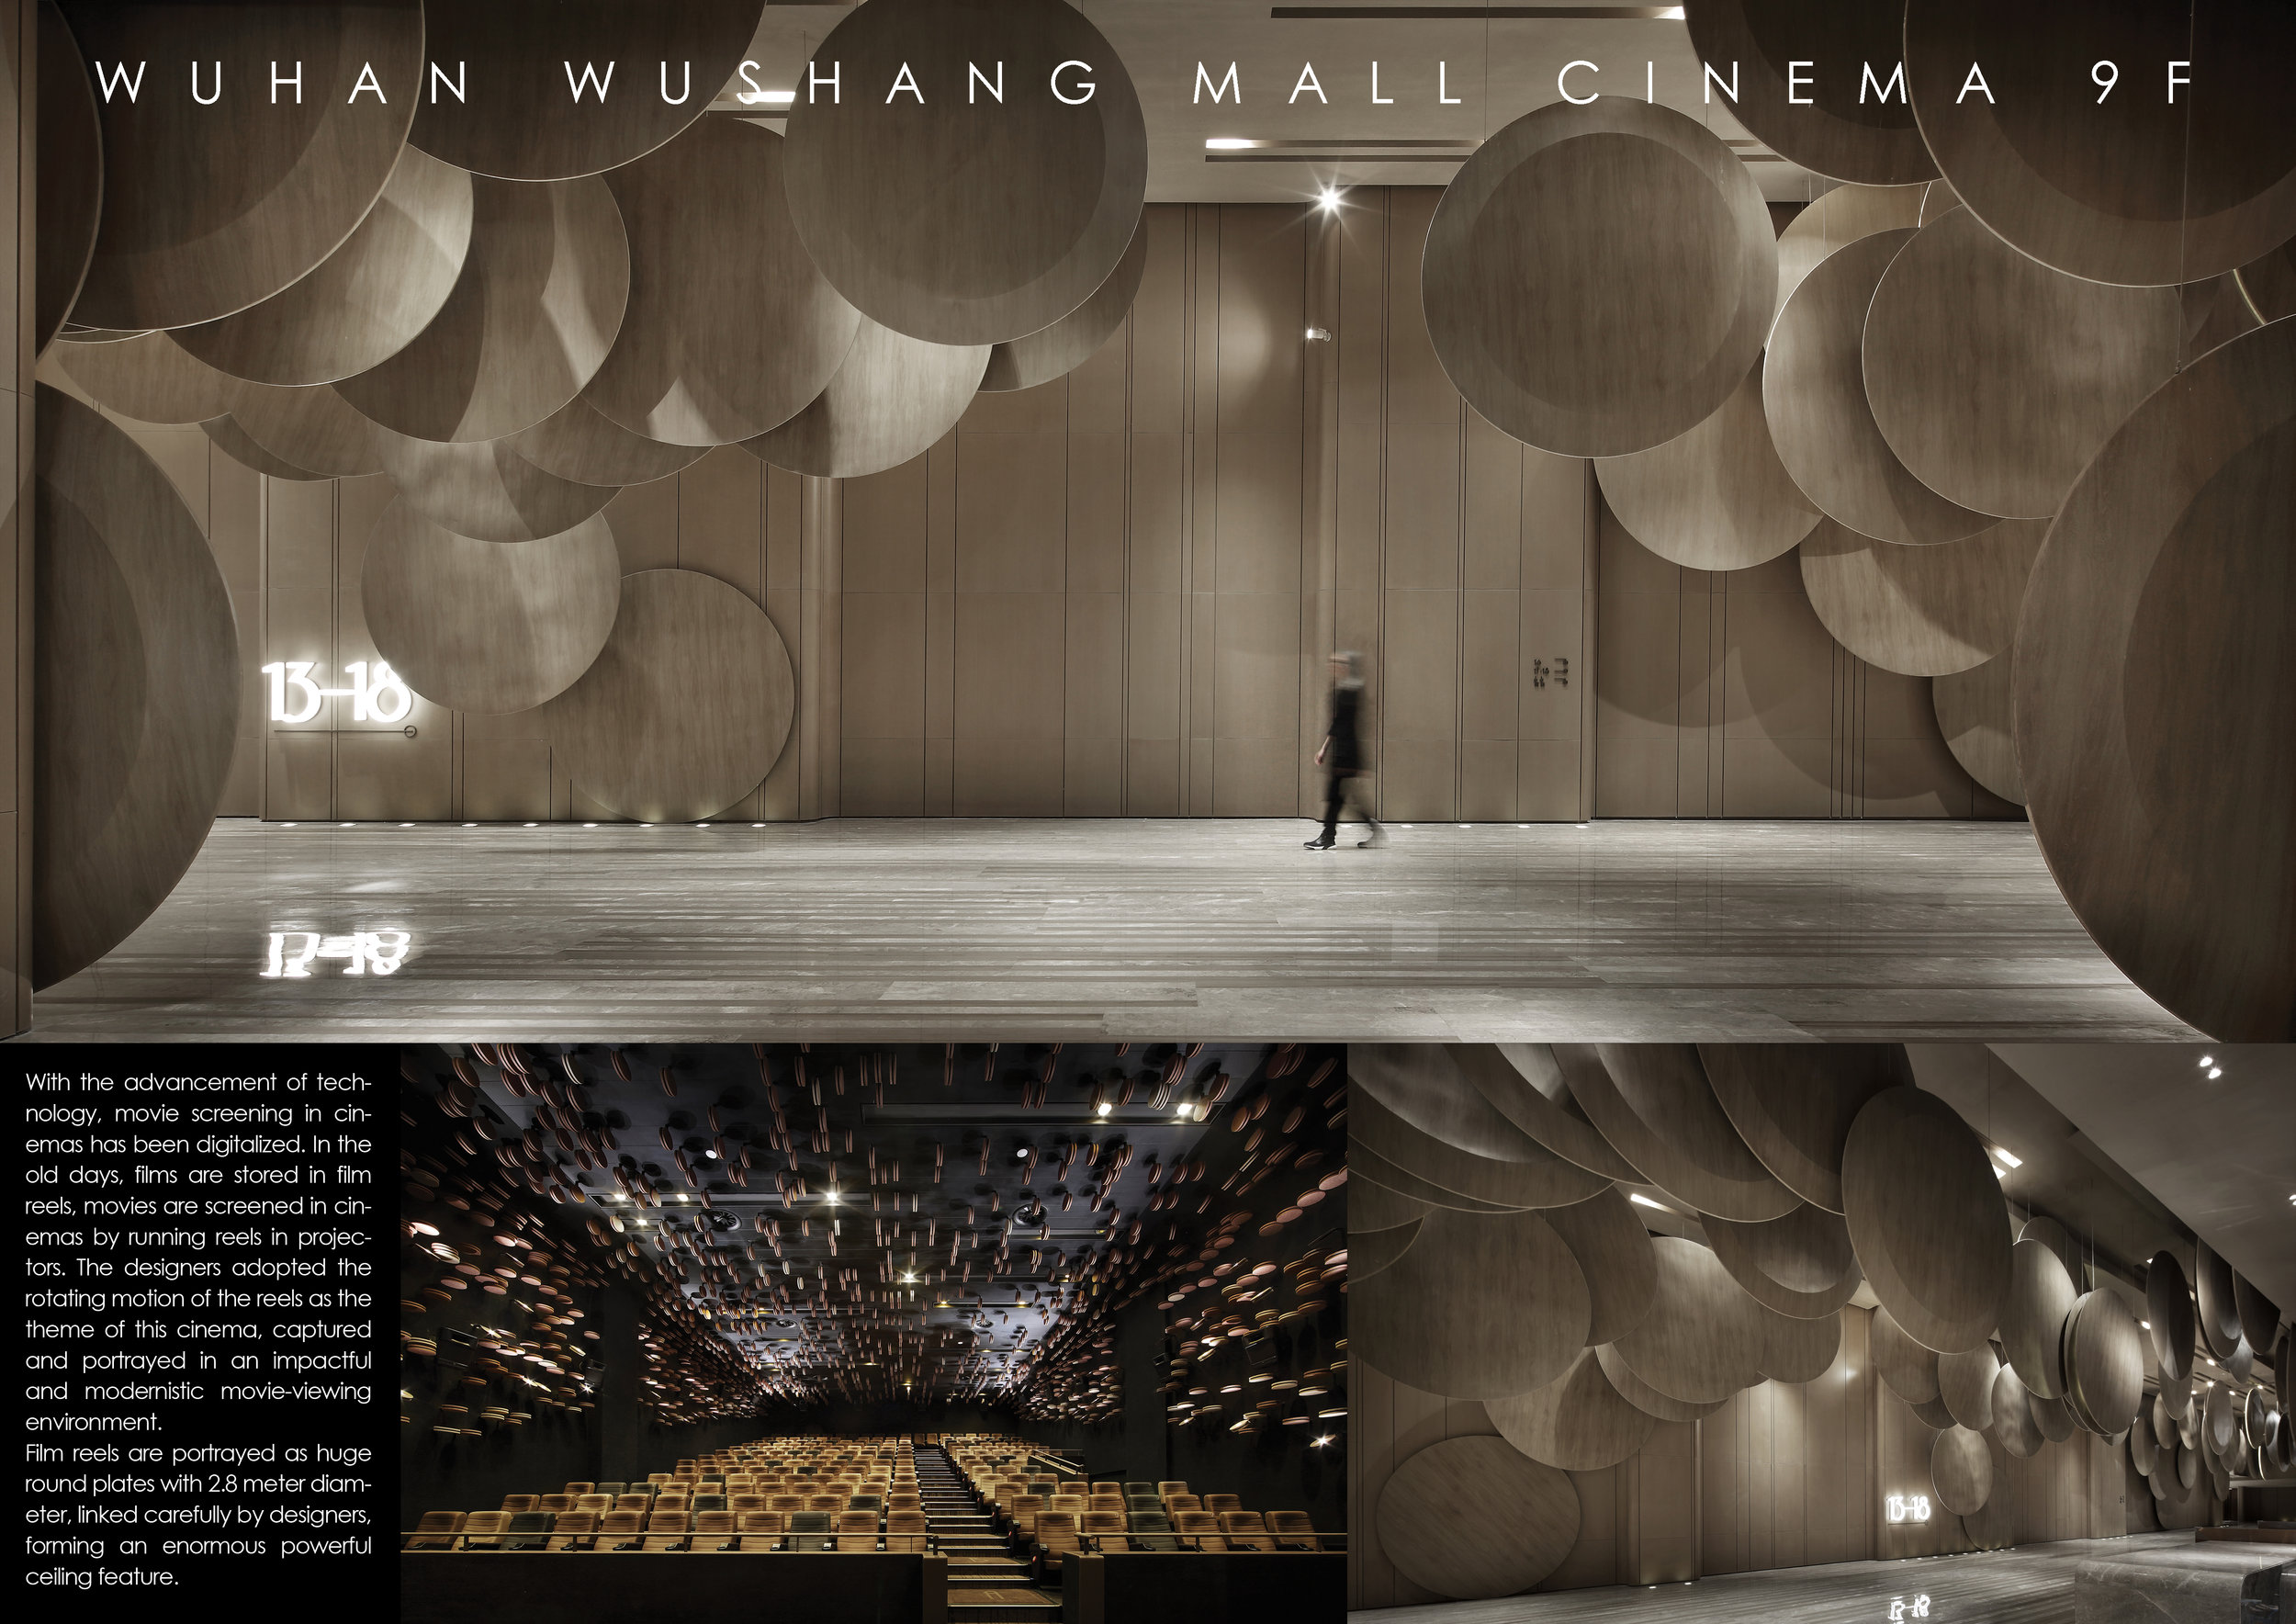 WUHAN WUSHANG MALL CINEMA 9F - Design by: One Plus Partnership LimitedInterior Division: LeisureWebsite: http://www.onepluspartnership.com